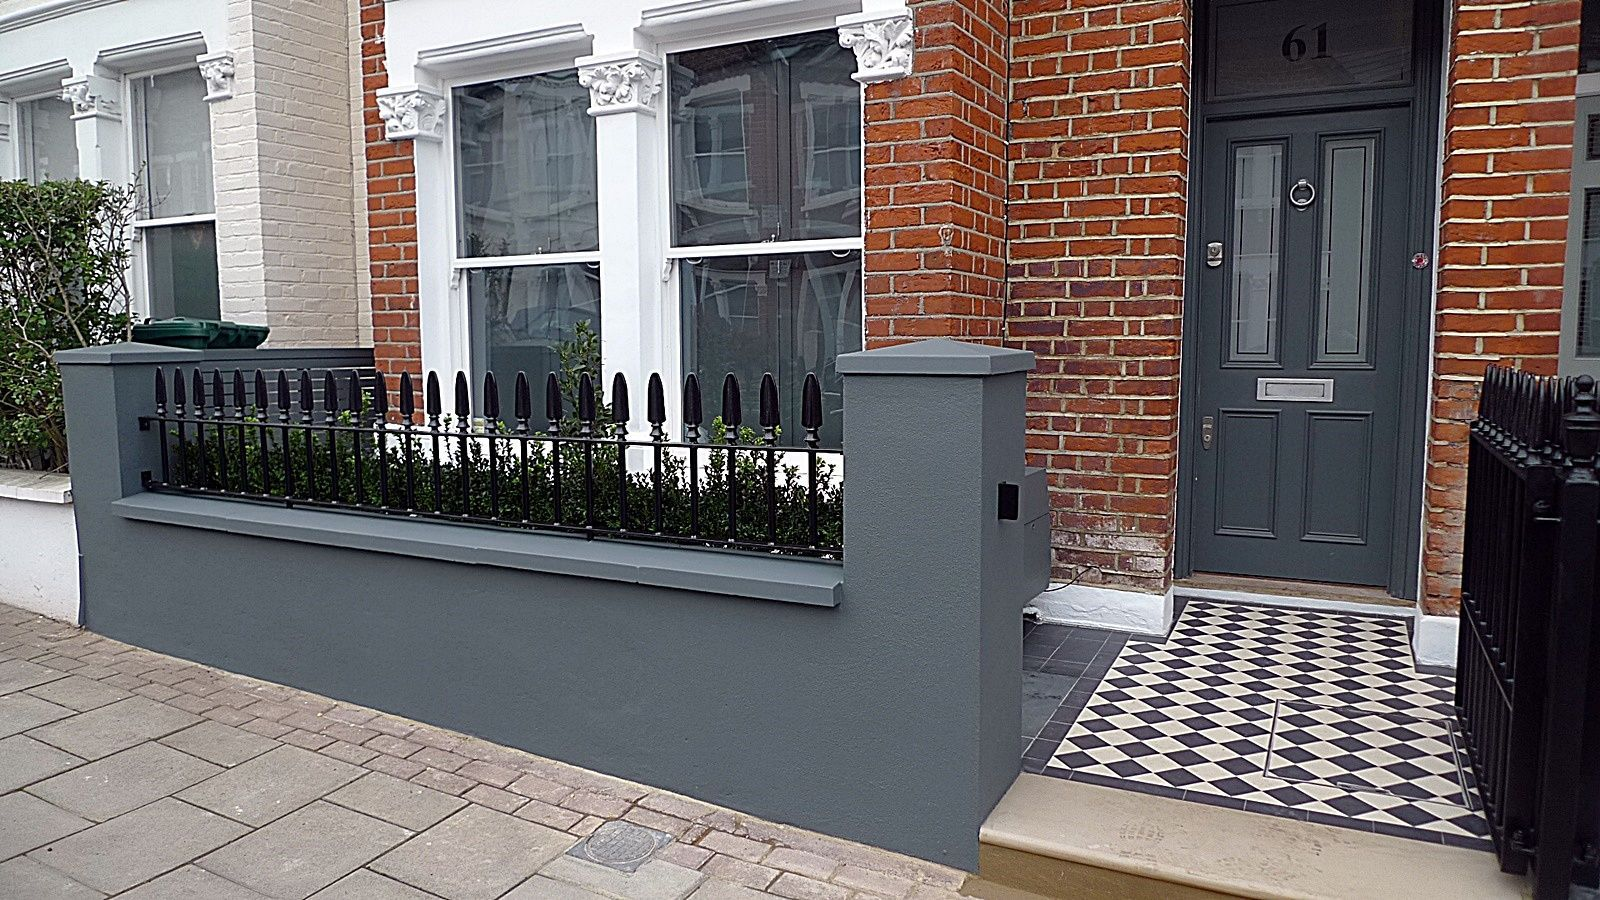 10 Front Garden Wall Ideas Most Of The Elegant And Stunning Victorian Front Garden Front Garden Design Front Garden